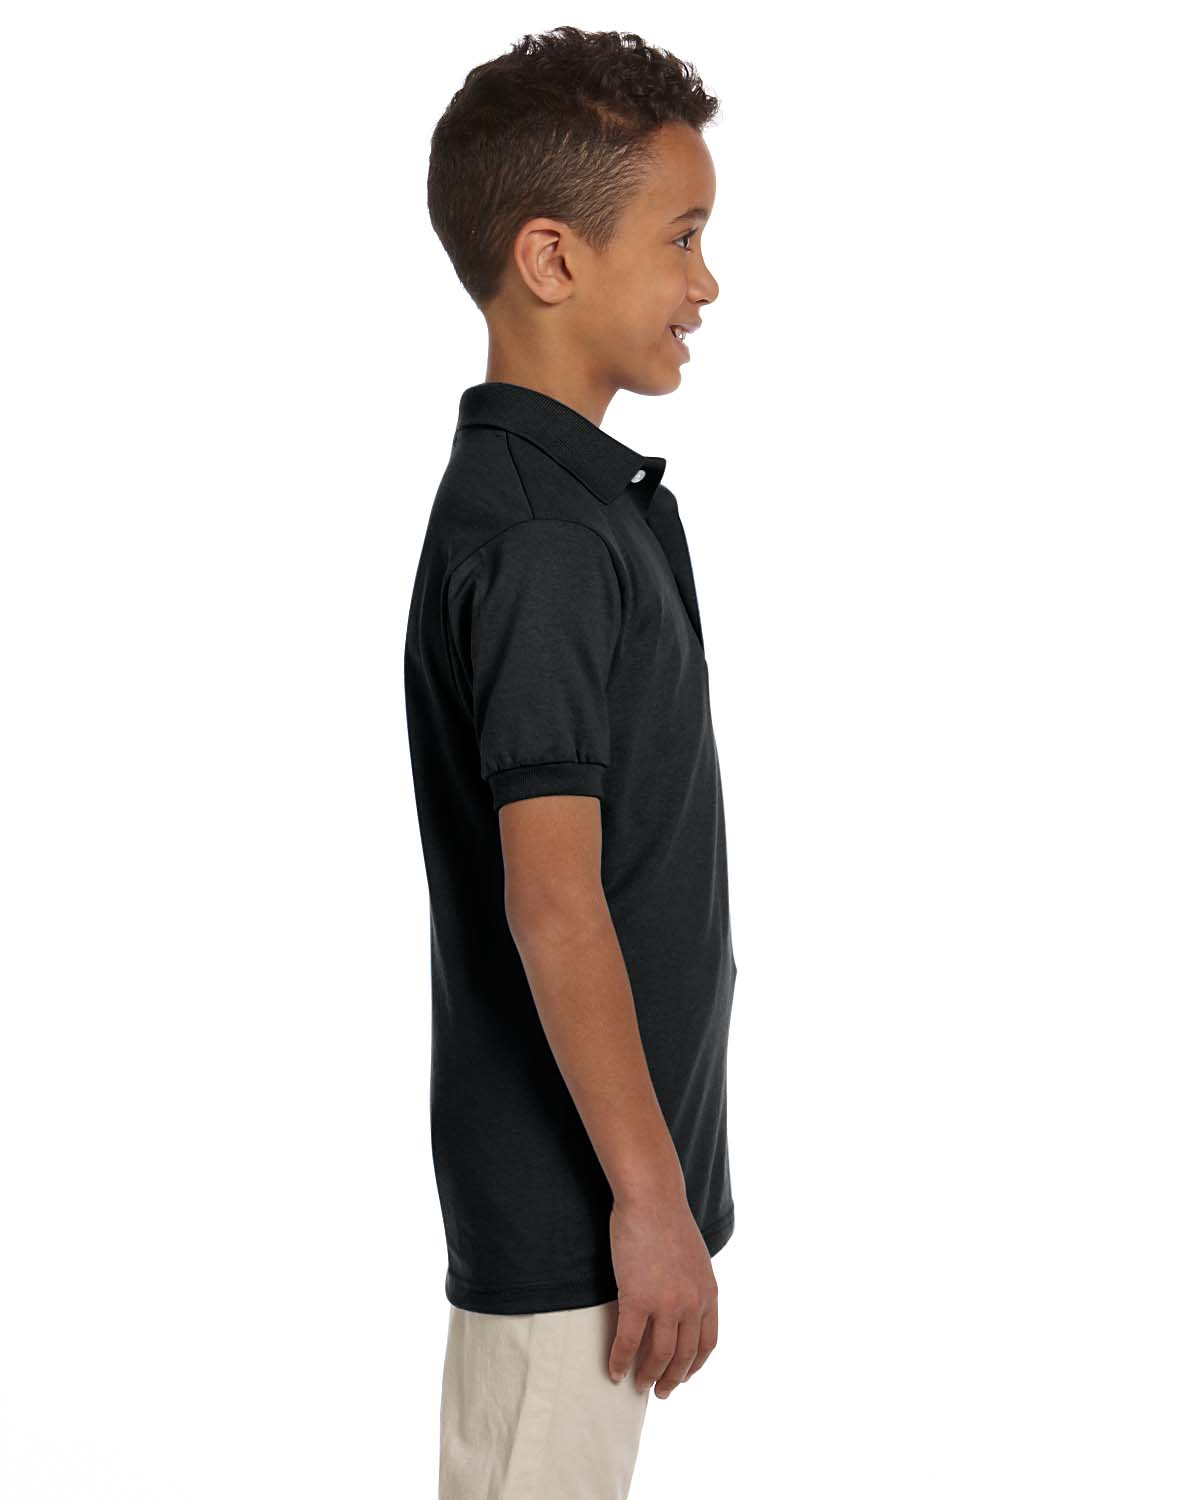 NEW Jerzees Youth 5.6 oz SpotShield Jersey Polo Shirt M-437Y